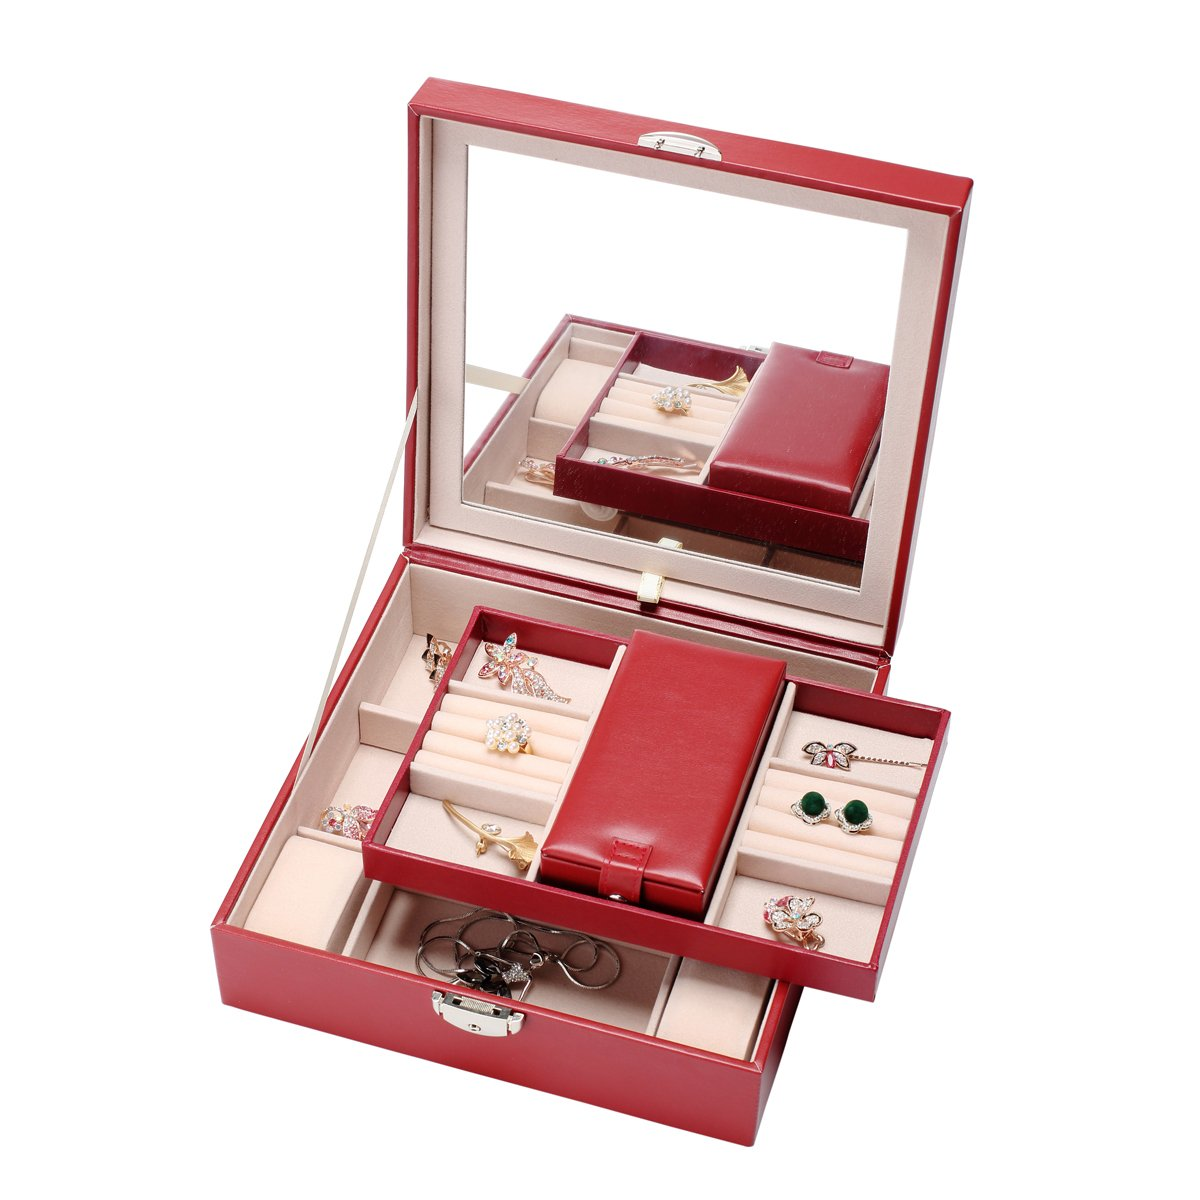 Pasutewel Jewelry Organizer,PU Leather Jewelry Box - Large Mirror & 2 Trays for Women and Girls Earring Ring Necklace Bracelet & Watch Organizer with Lock